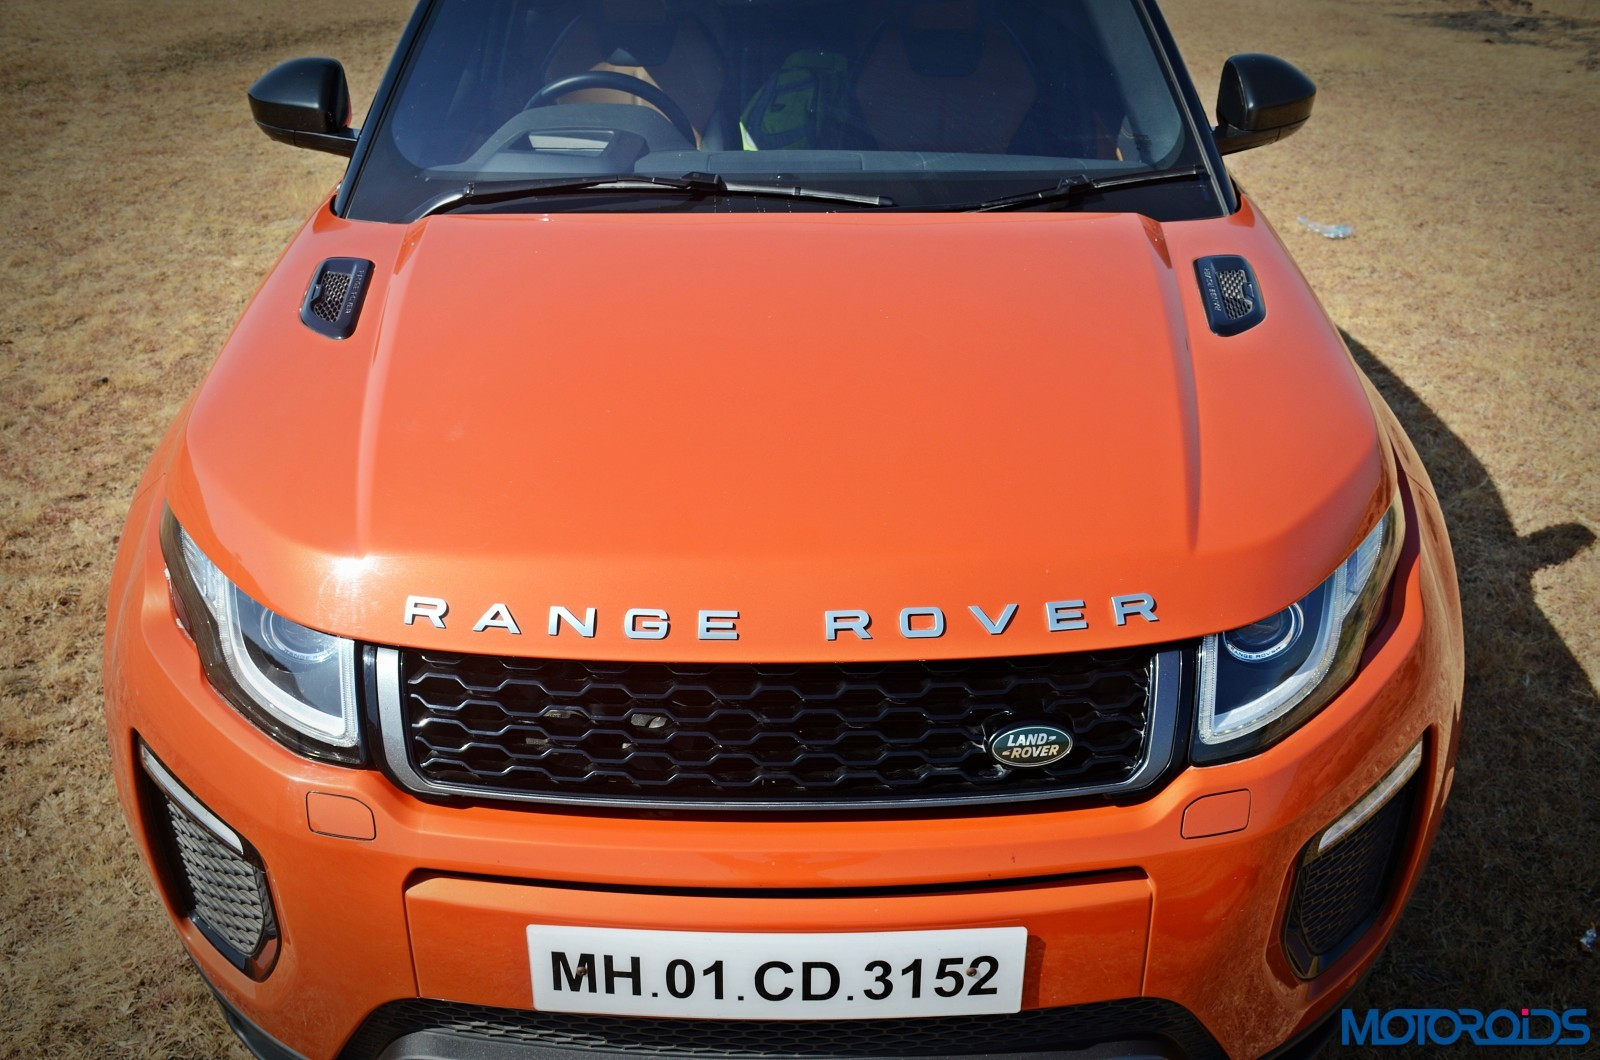 2017 Land Rover Range Rover Evoque Autobiography >> Range Rover Evoque 2.2 Diesel Review : Bling Thing | Motoroids